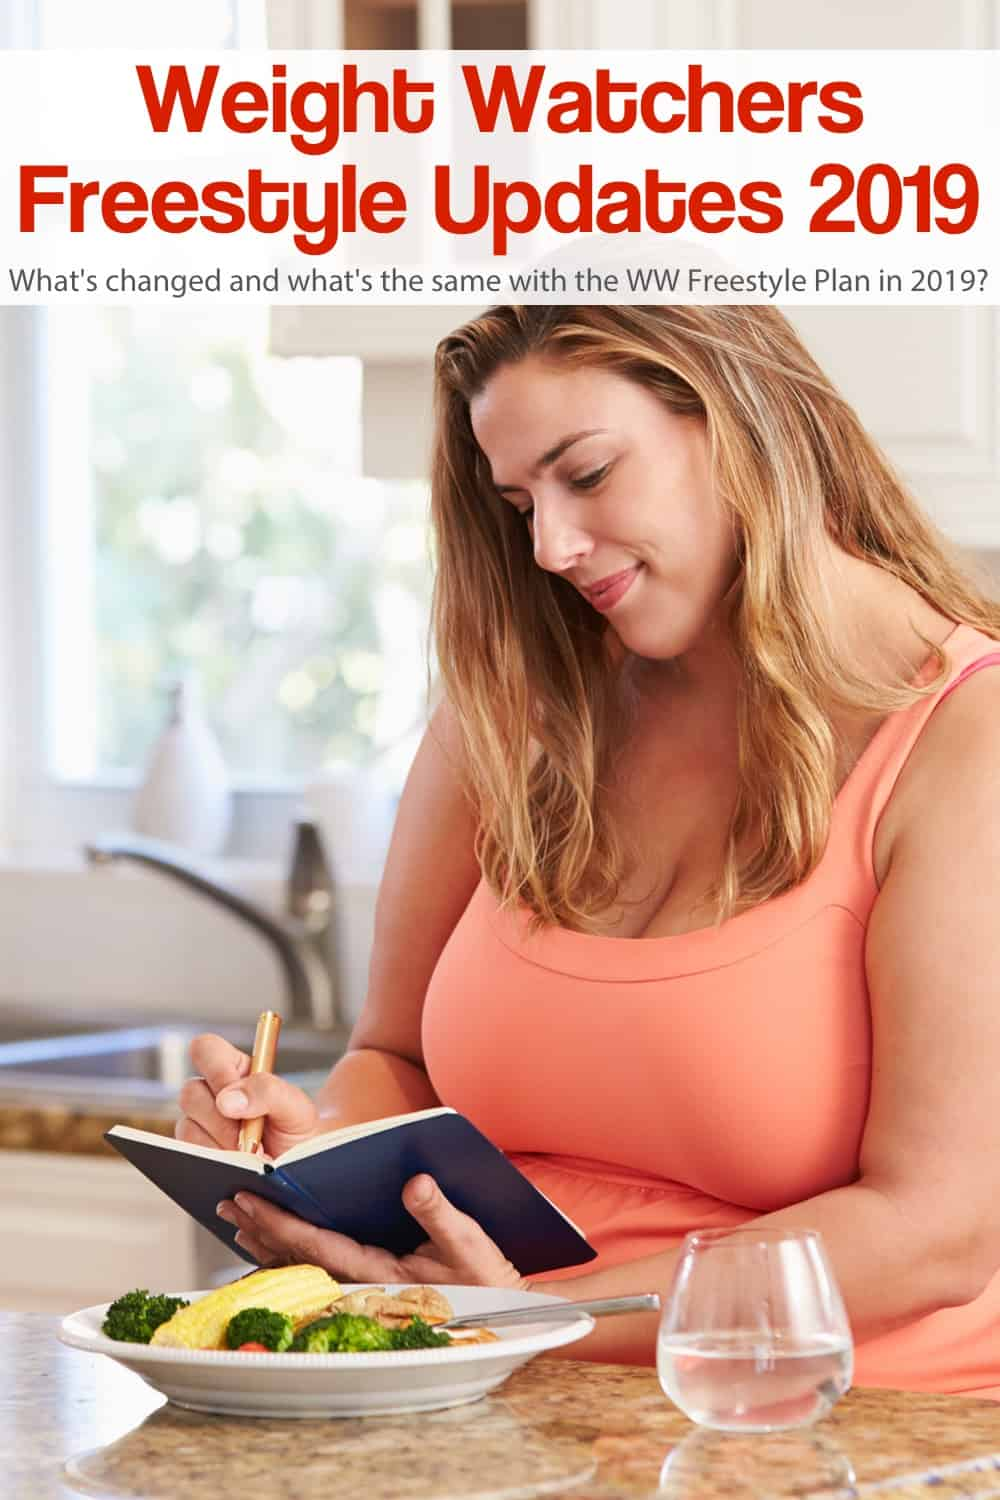 Changes to the WW (Weight Watchers Program) for 2019